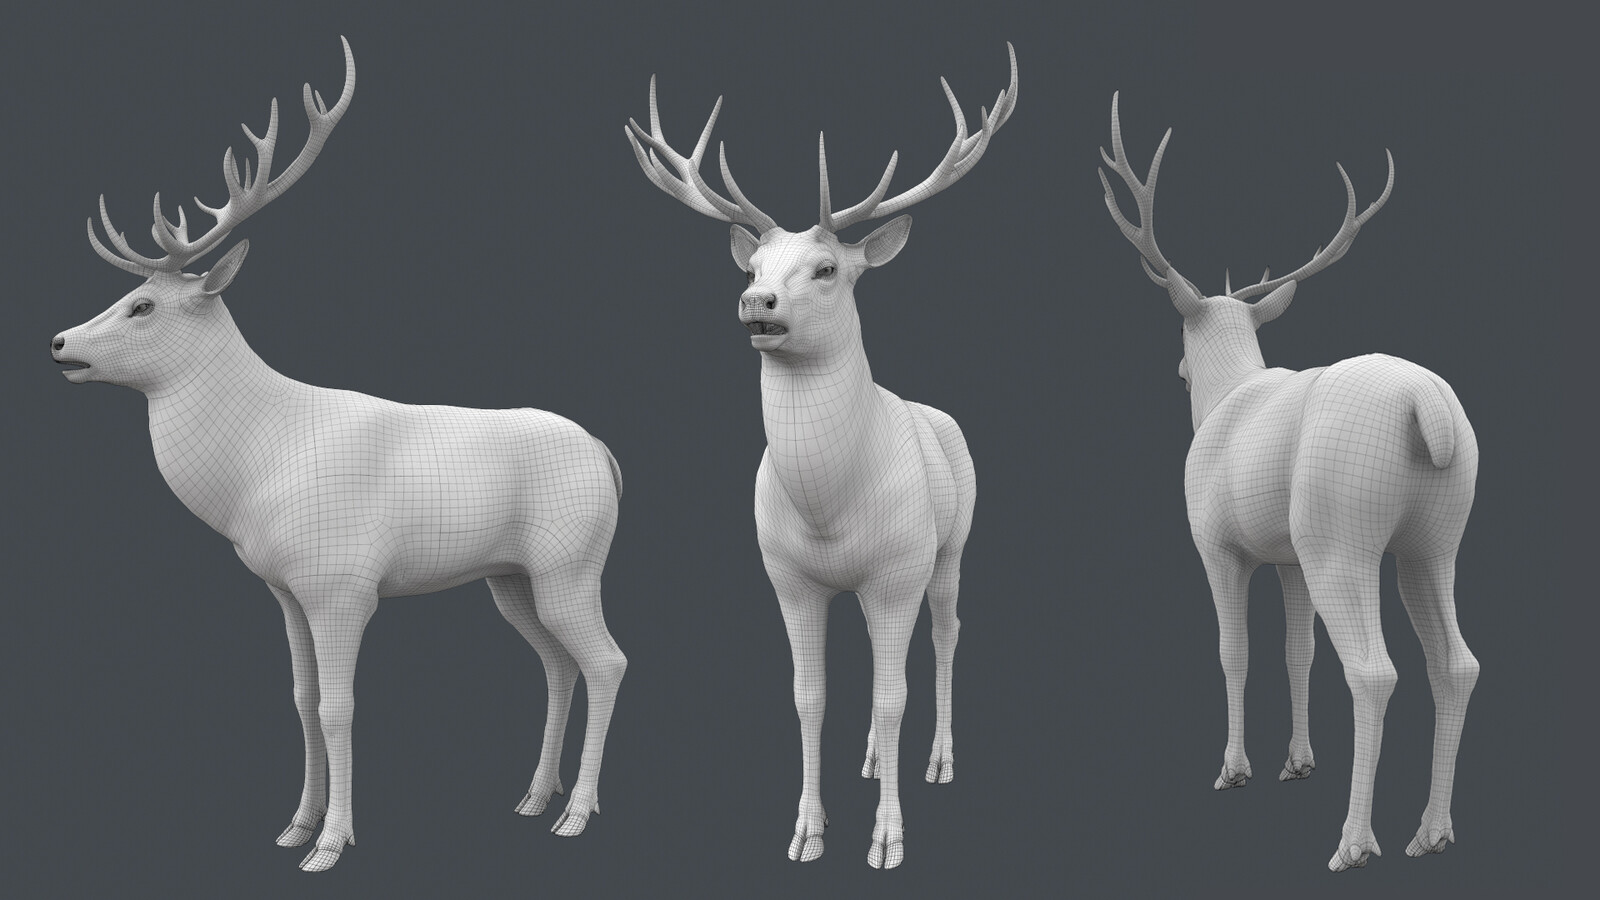 Deer from the film Peter Rabbit (topology).